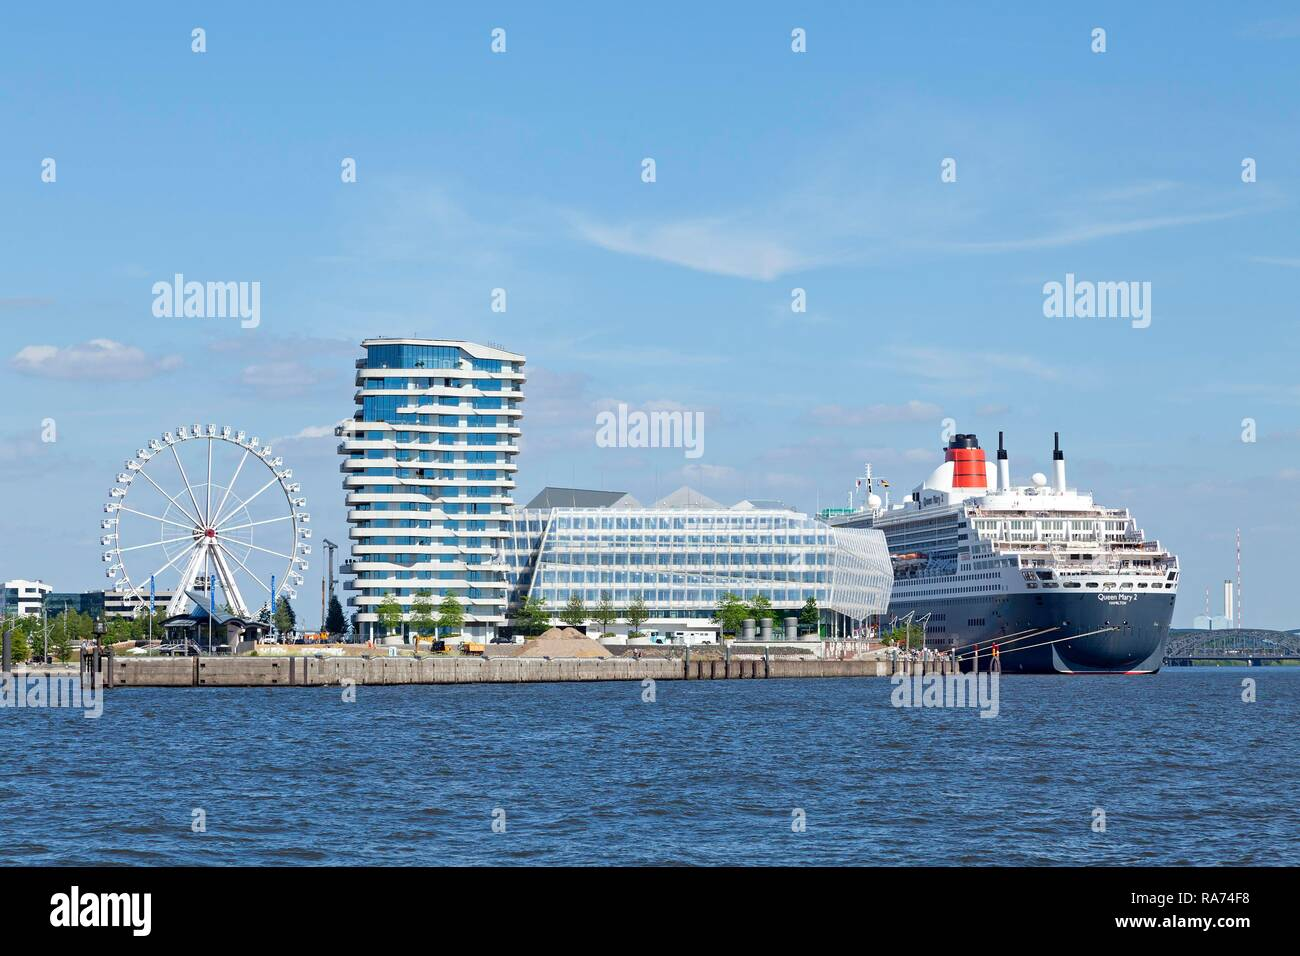 Marco Polo Tower, Unilever House, Queen Mary 2, HafenCity, Hamburg, Germany Stock Photo